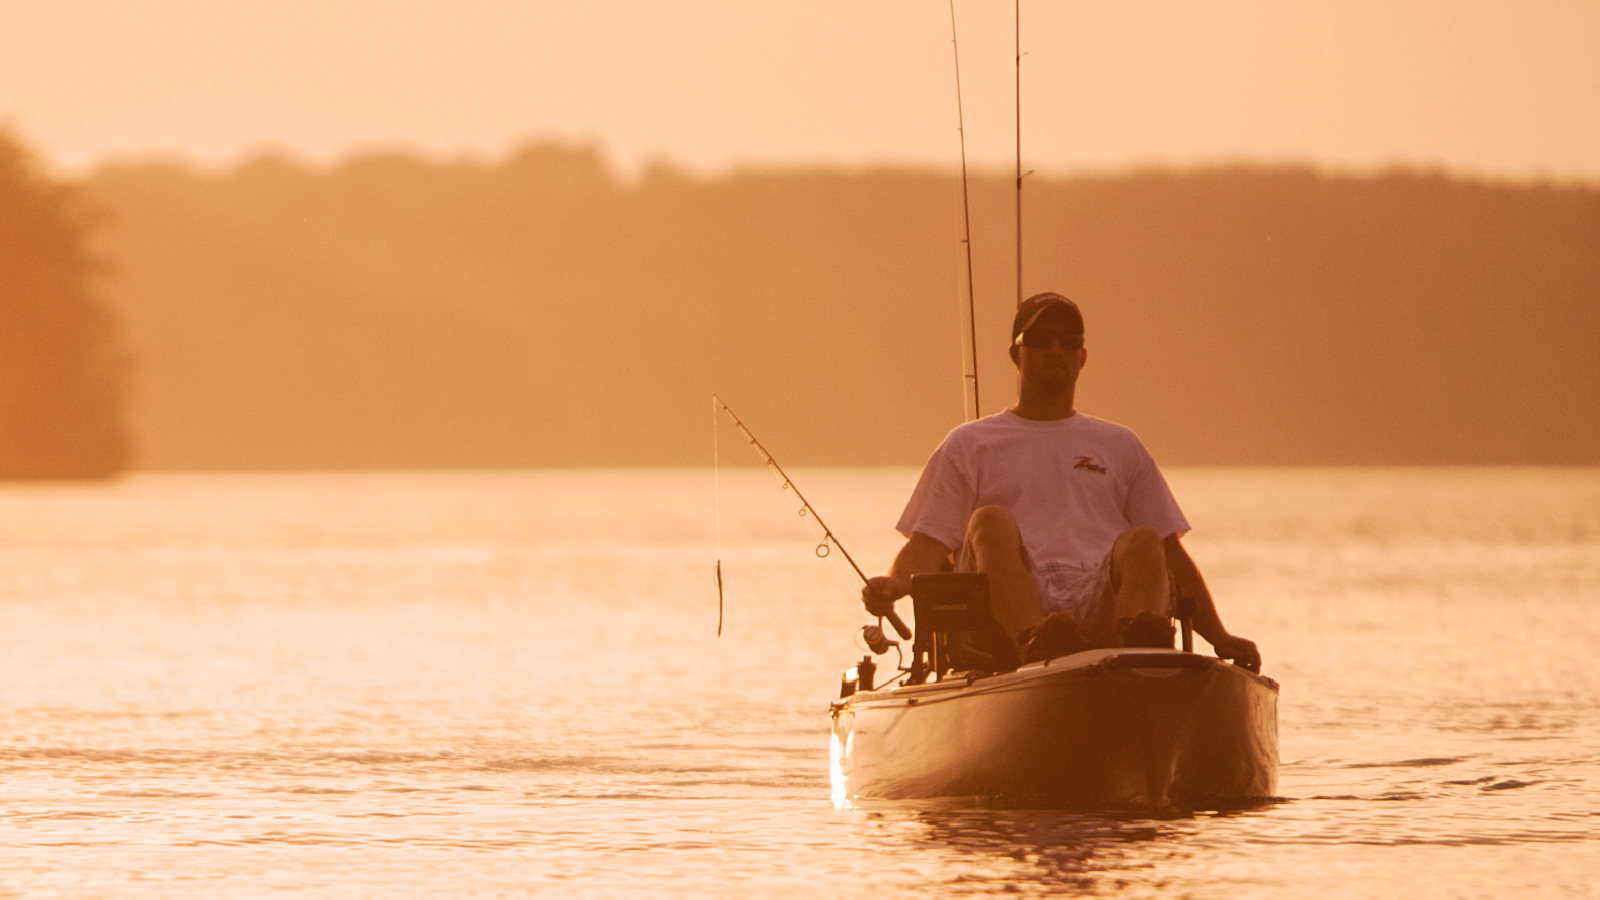 Kayak Fishing Locations and Conditions